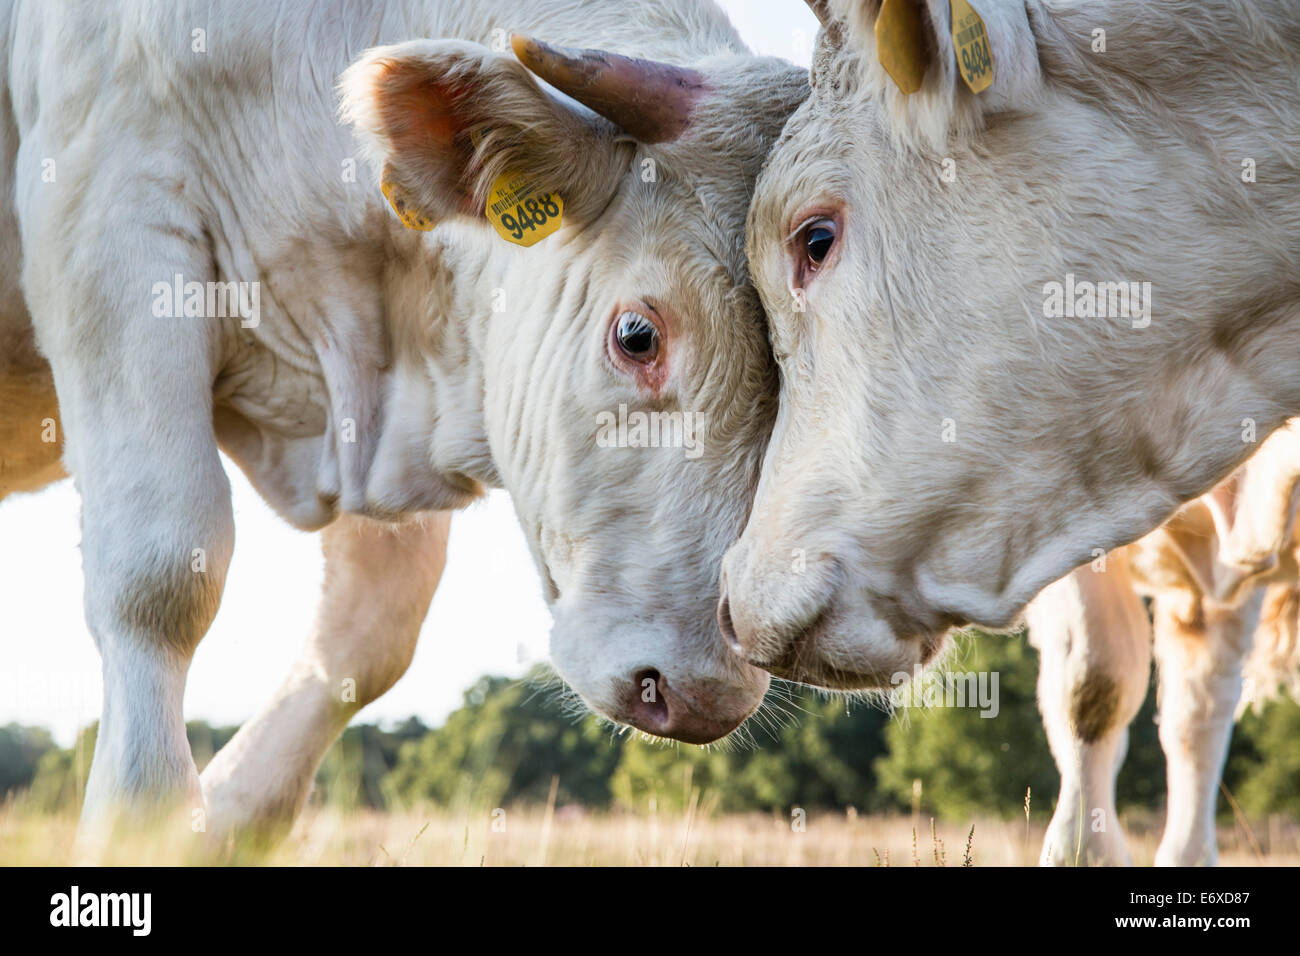 Netherlands, Blaricum, Heathland or moorland called Tafelbergheide. Charolais cattle. Young bulls challenging each - Stock Image